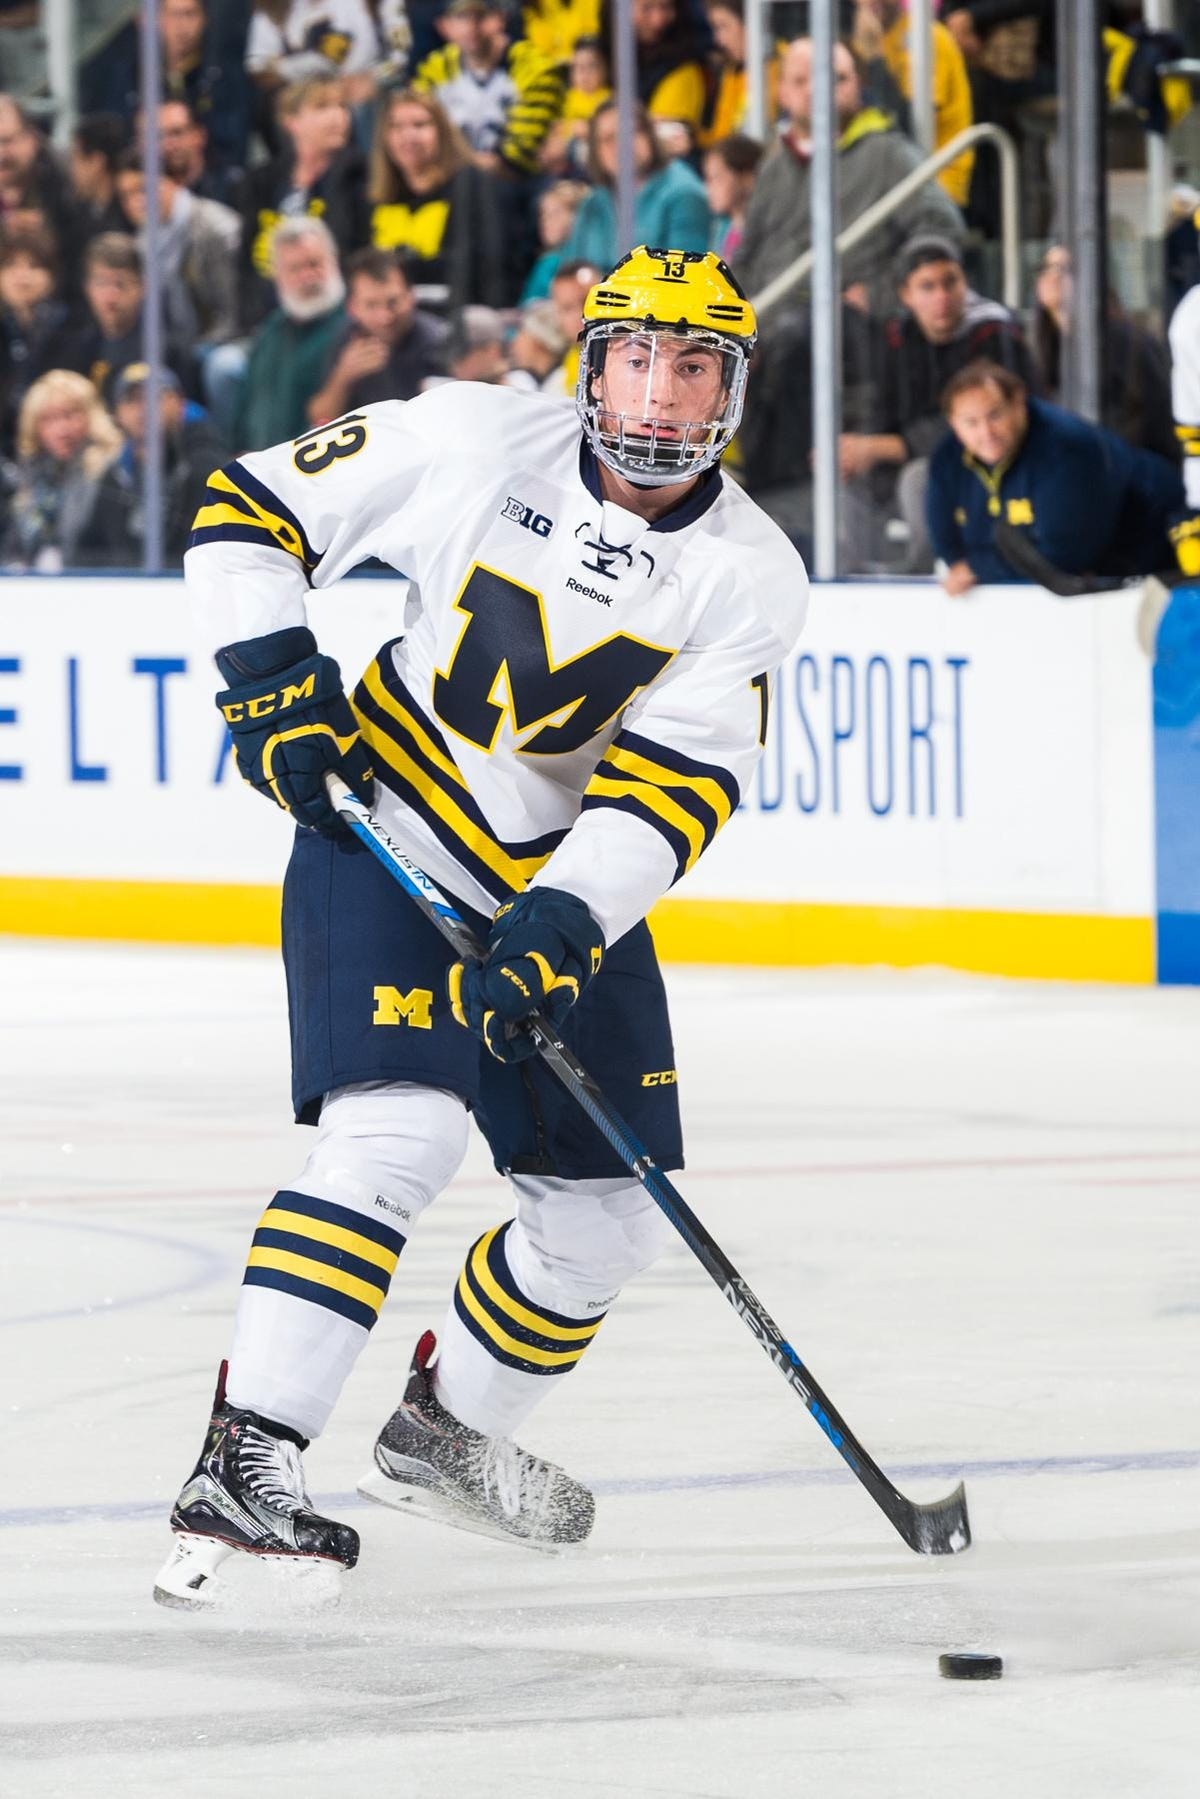 factory price 44a57 17085 Michigan's Zach Werenski out to play iron 'D' vs. MSU